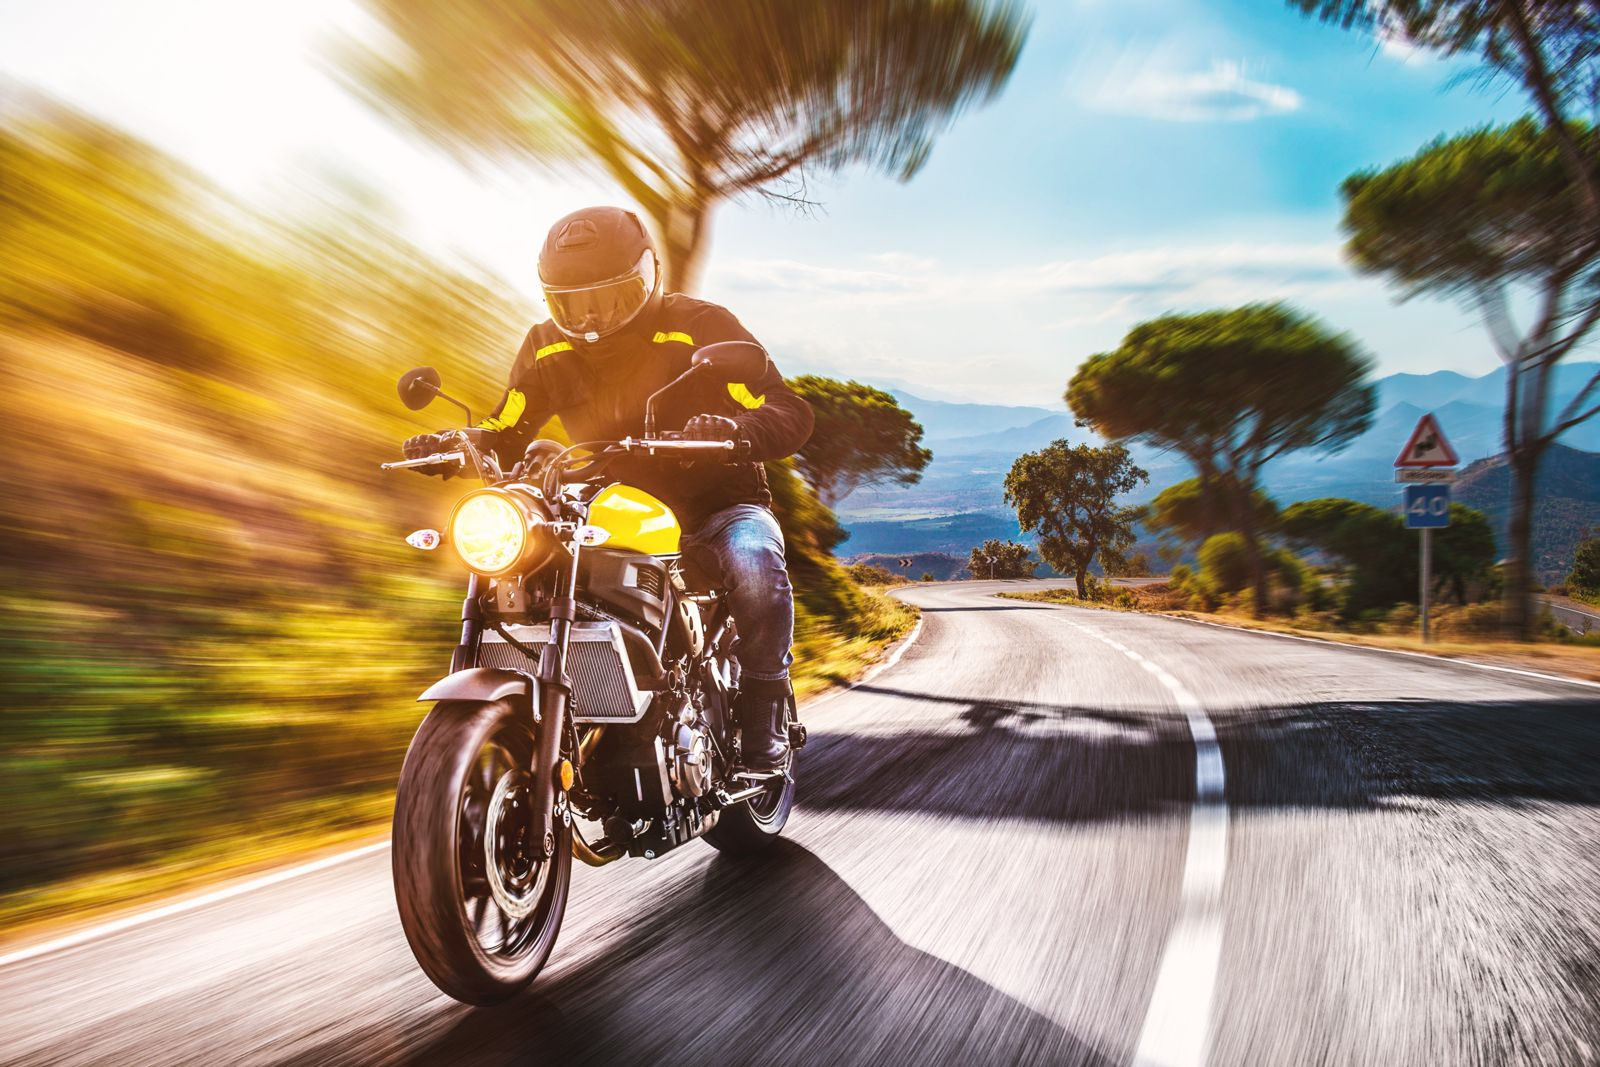 Motorcylclist Riding on Winding Road